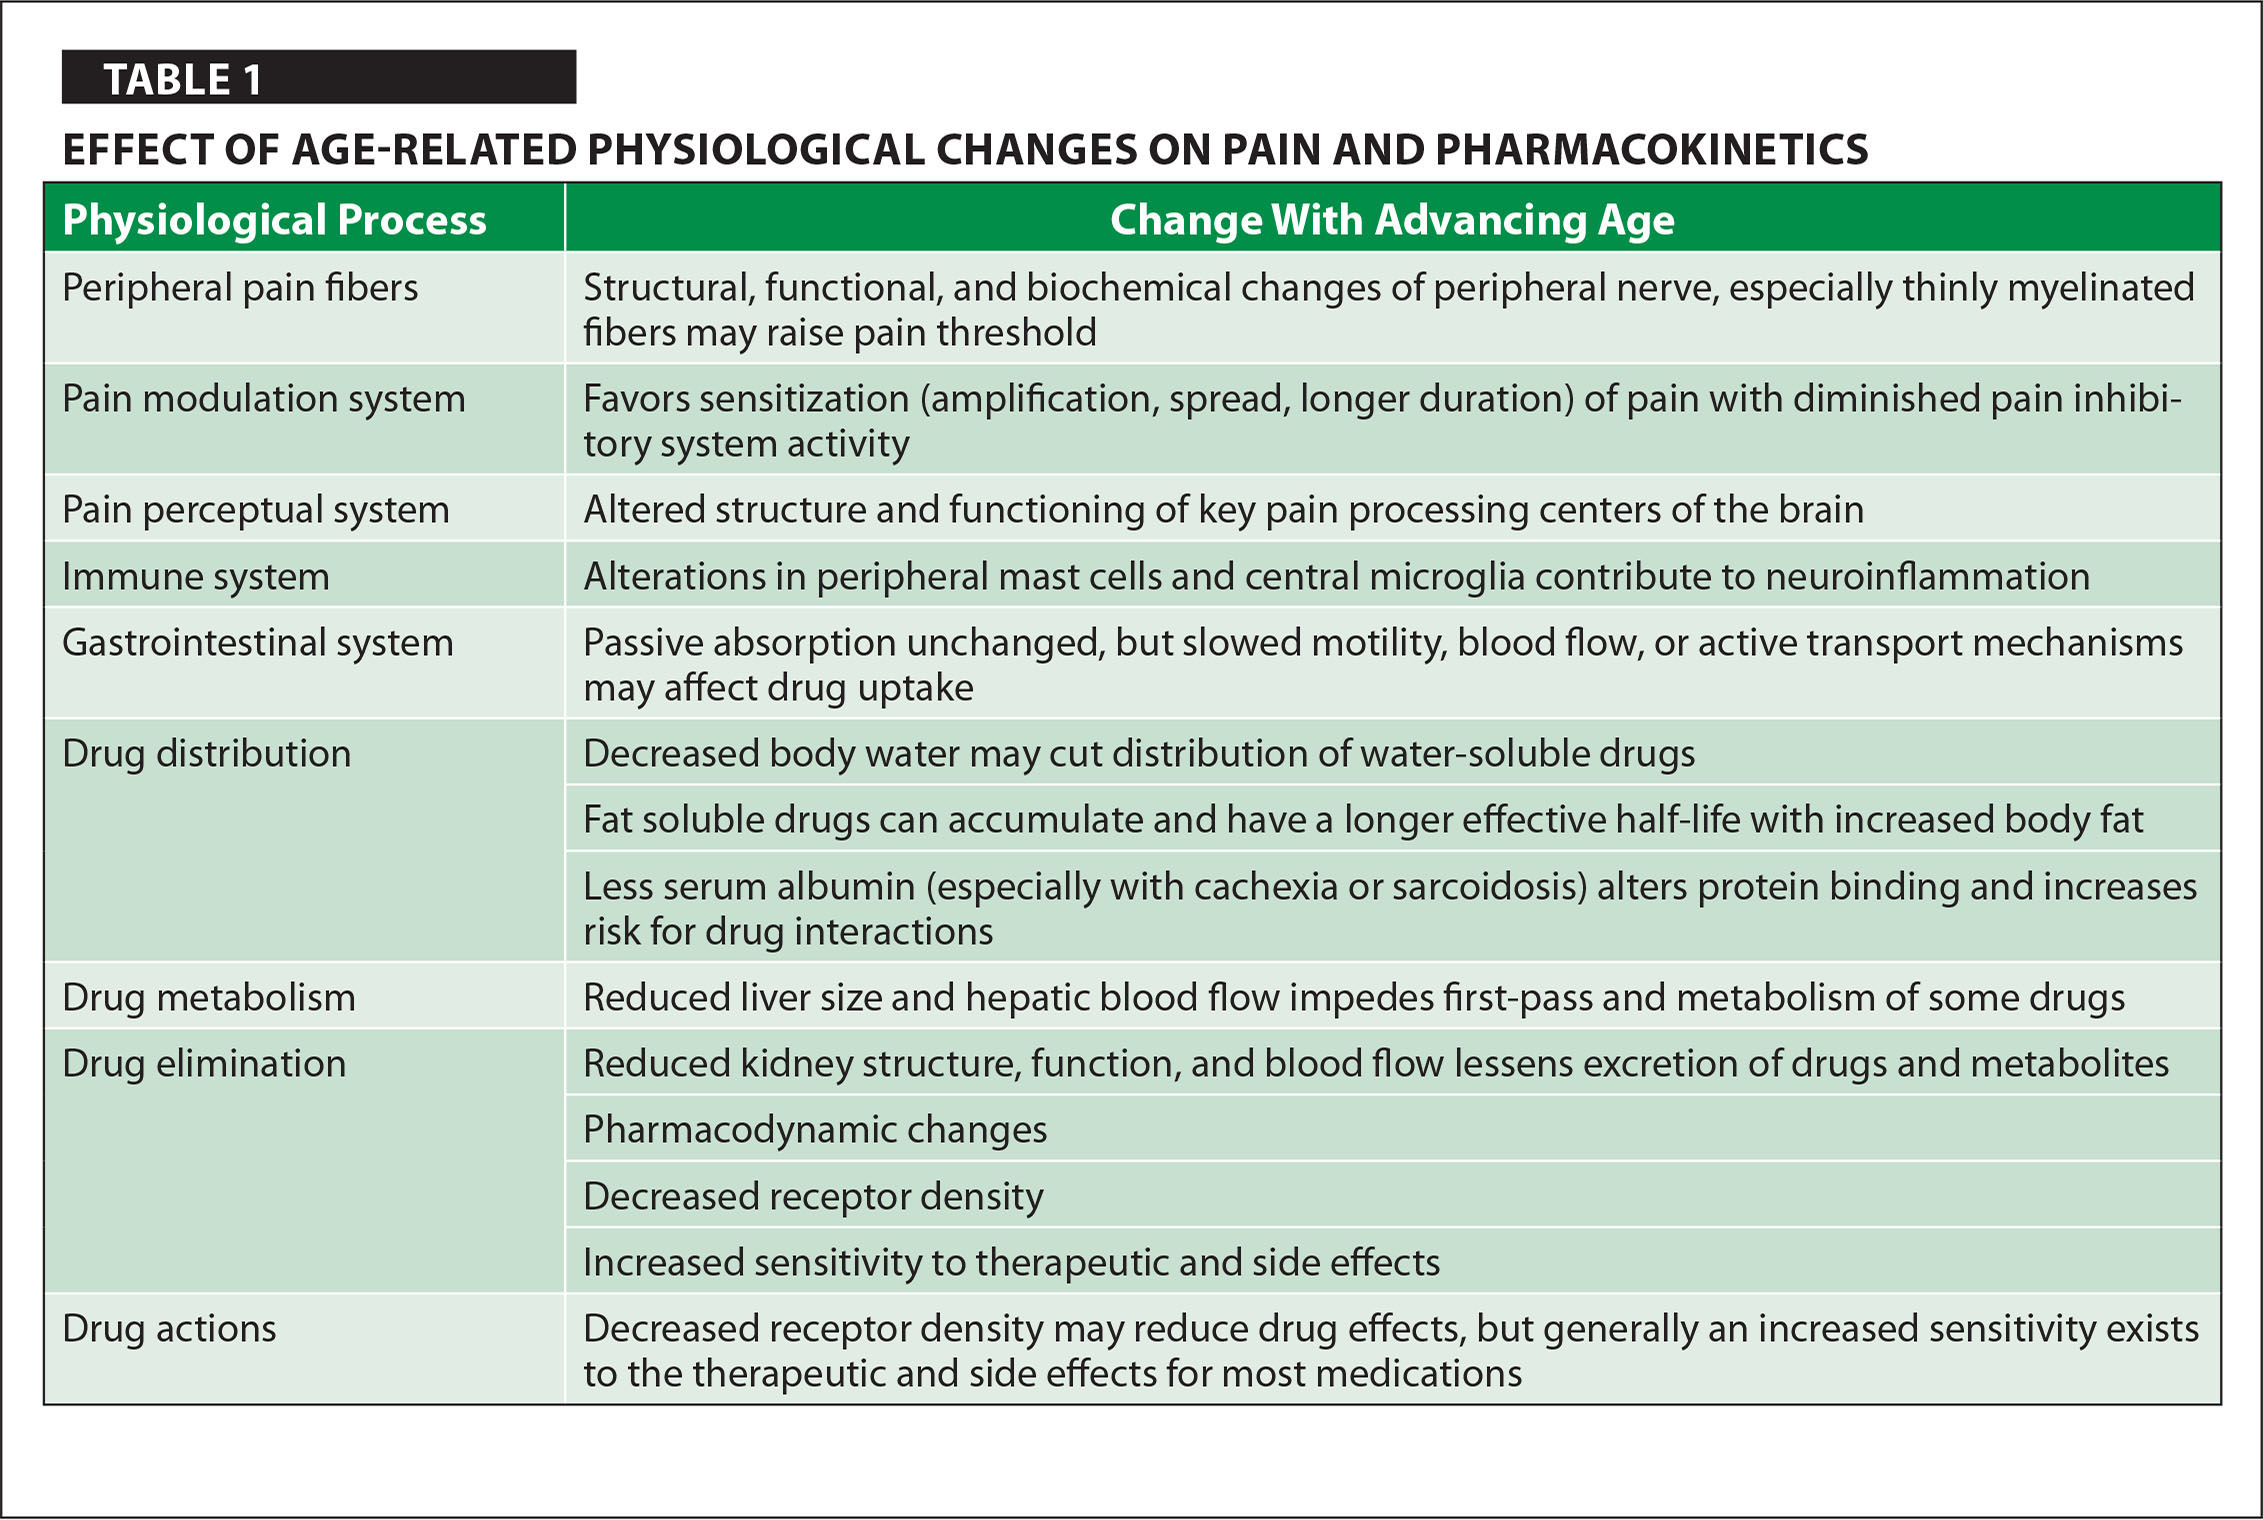 Effect of Age-Related Physiological Changes on Pain and Pharmacokinetics